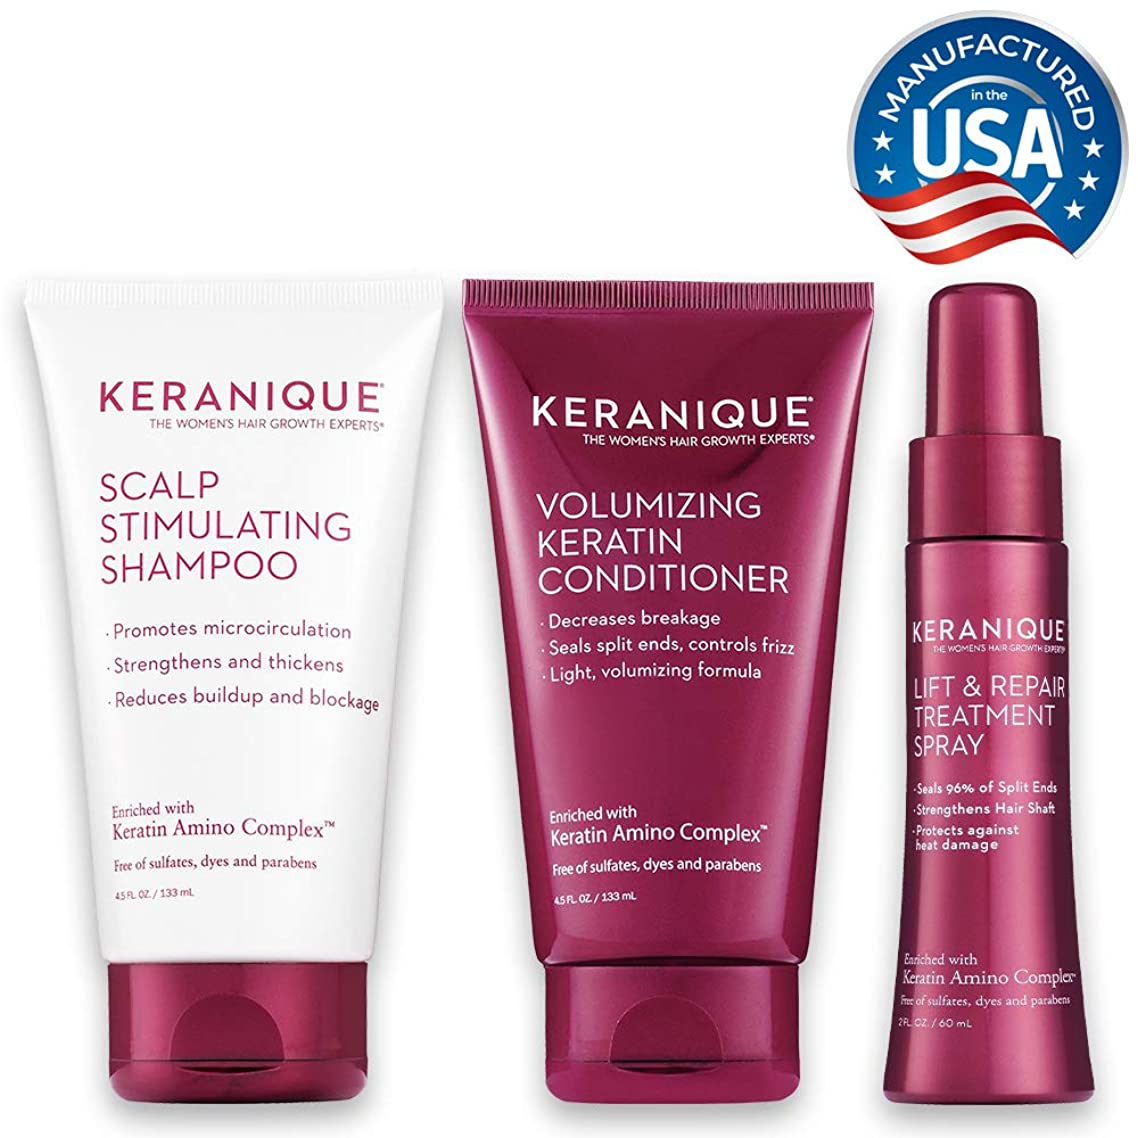 Keranique 30 Day Lift & Repair Kit   Shampoo, Conditioner, and Lift & Repair Treatment Spray   Keratin Amino Complex   Seals Split Ends   Free of Sulfates, Dyes and Parabens